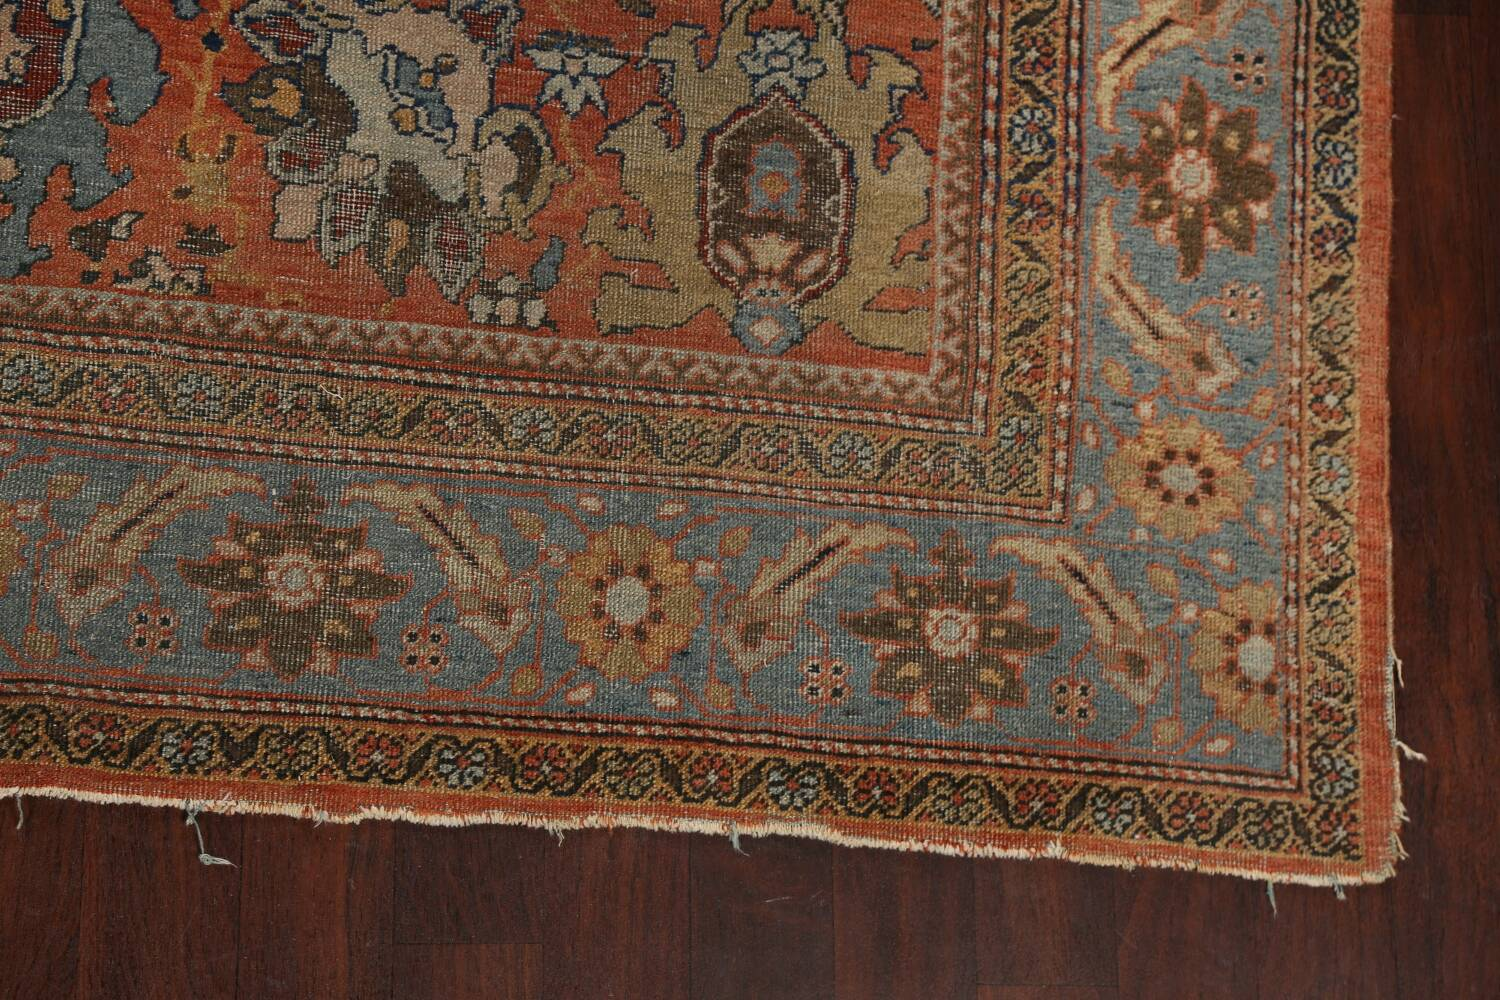 Pre-1900 Antique Vegetable Dye Sultanabad Persian Area Rug 9x12 image 5